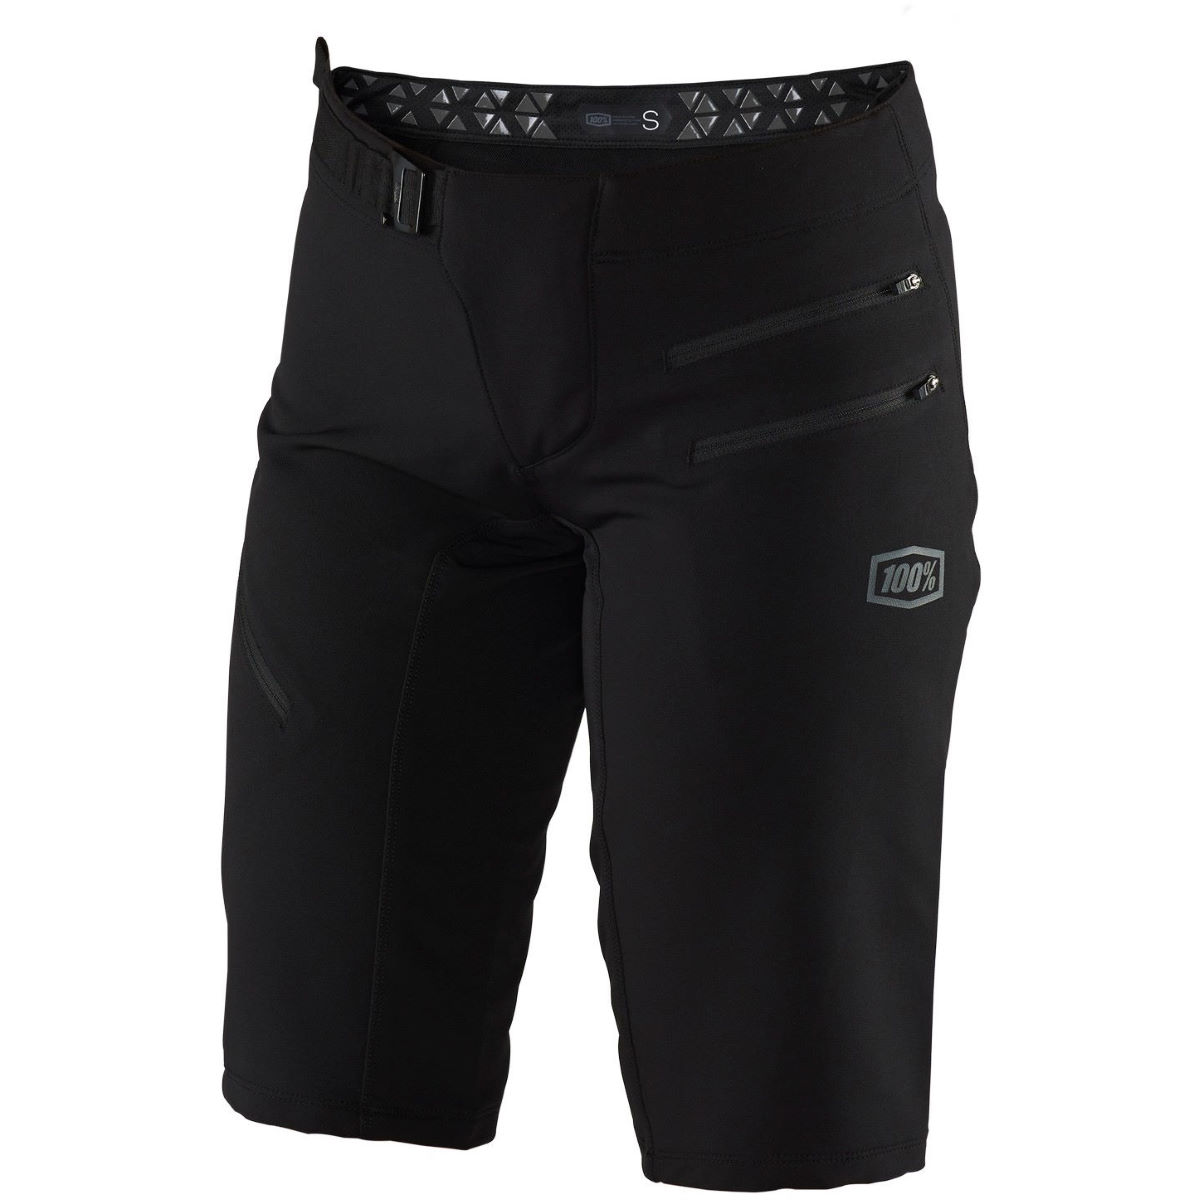 100% Womens Airmatic Shorts - S Black  Baggy Shorts